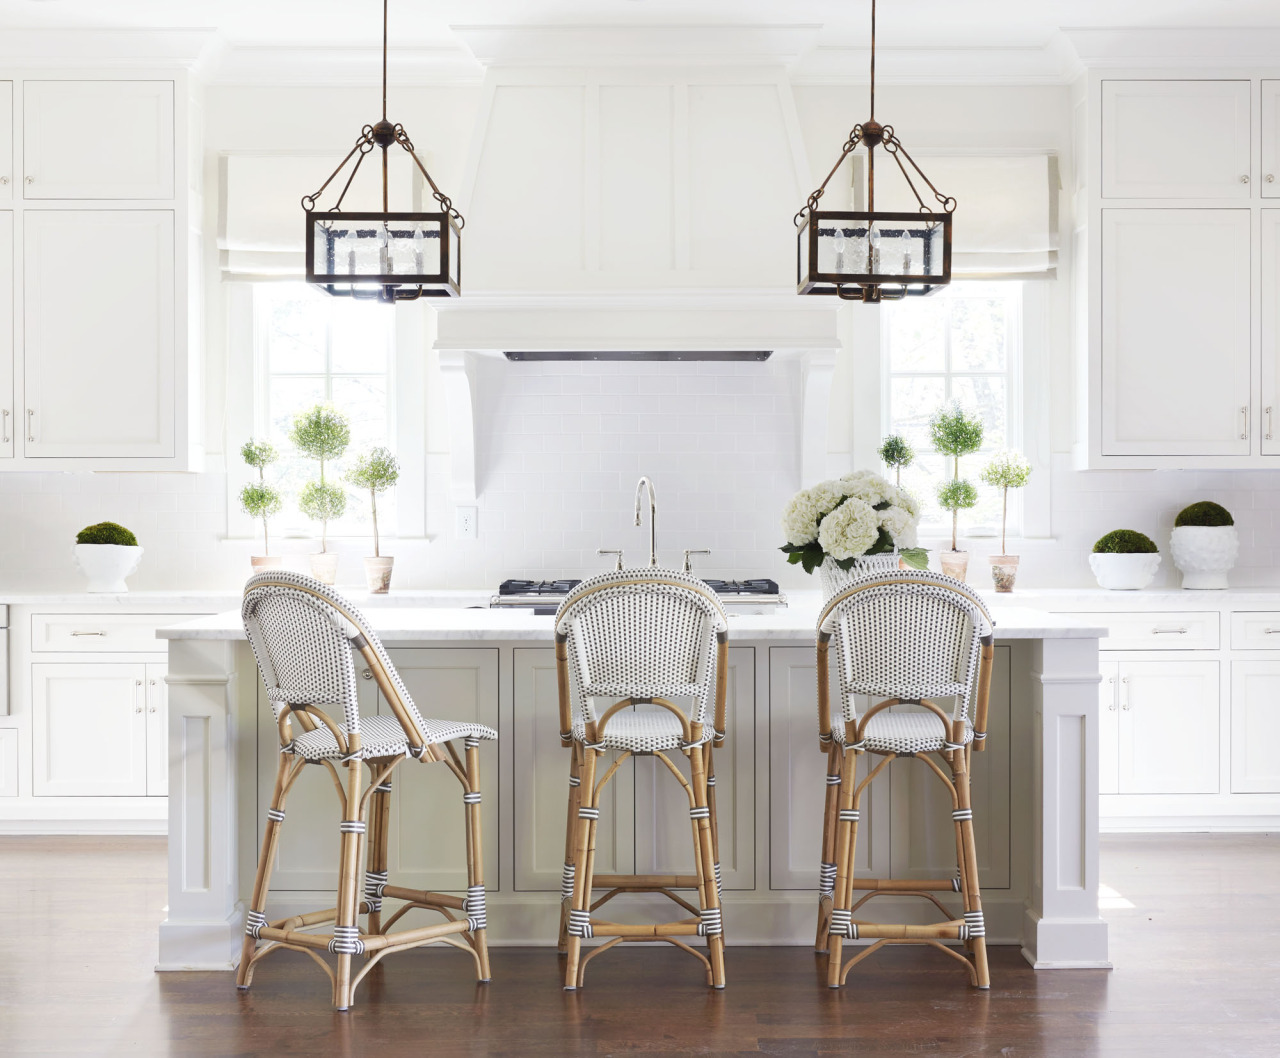 French Bistro Chairs via Sarah Bartholomew Design